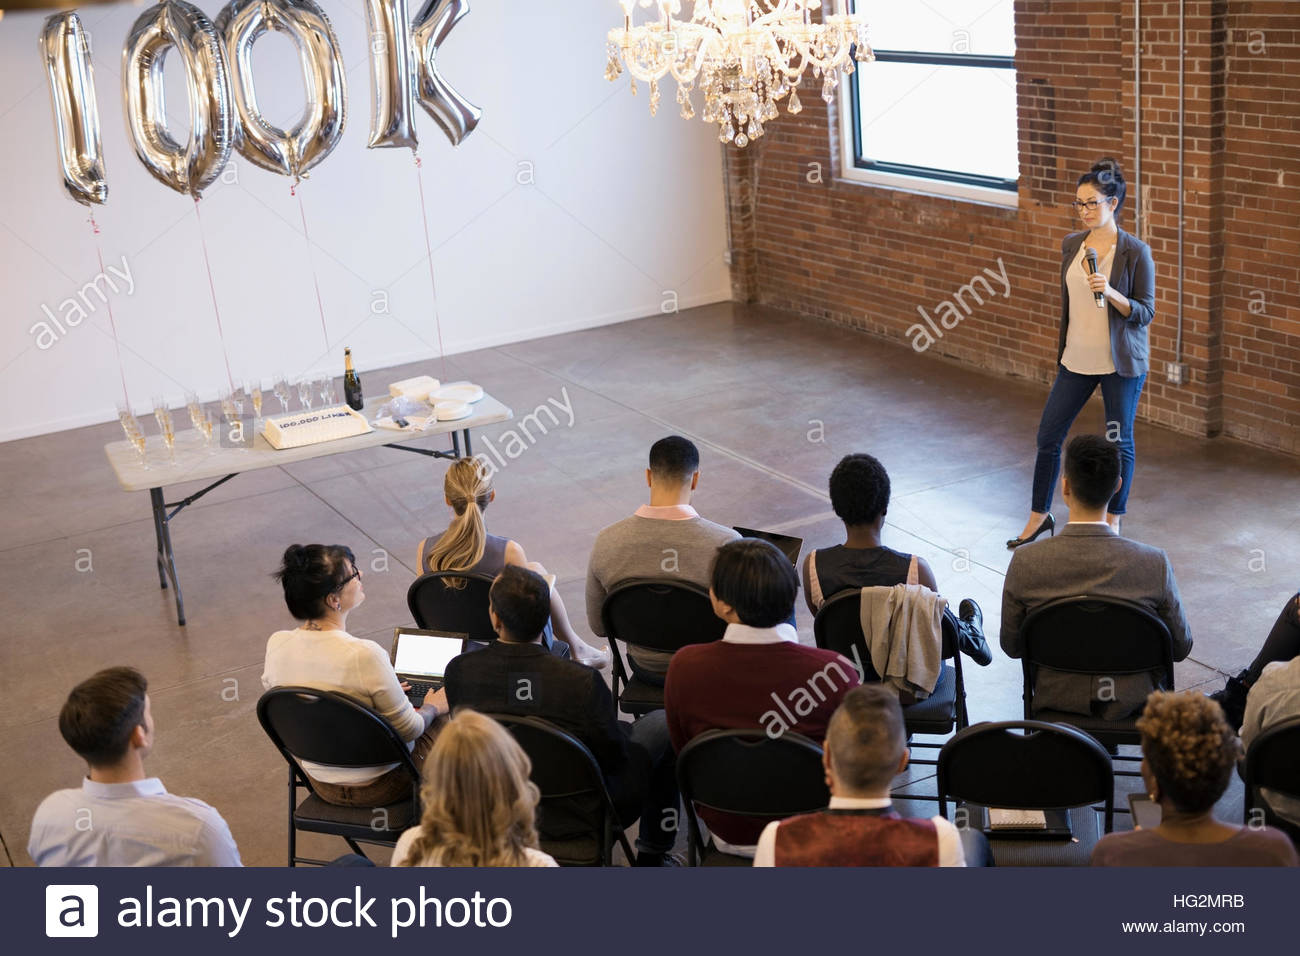 Businesswoman with microphone leading milestone conference meeting - Stock Image